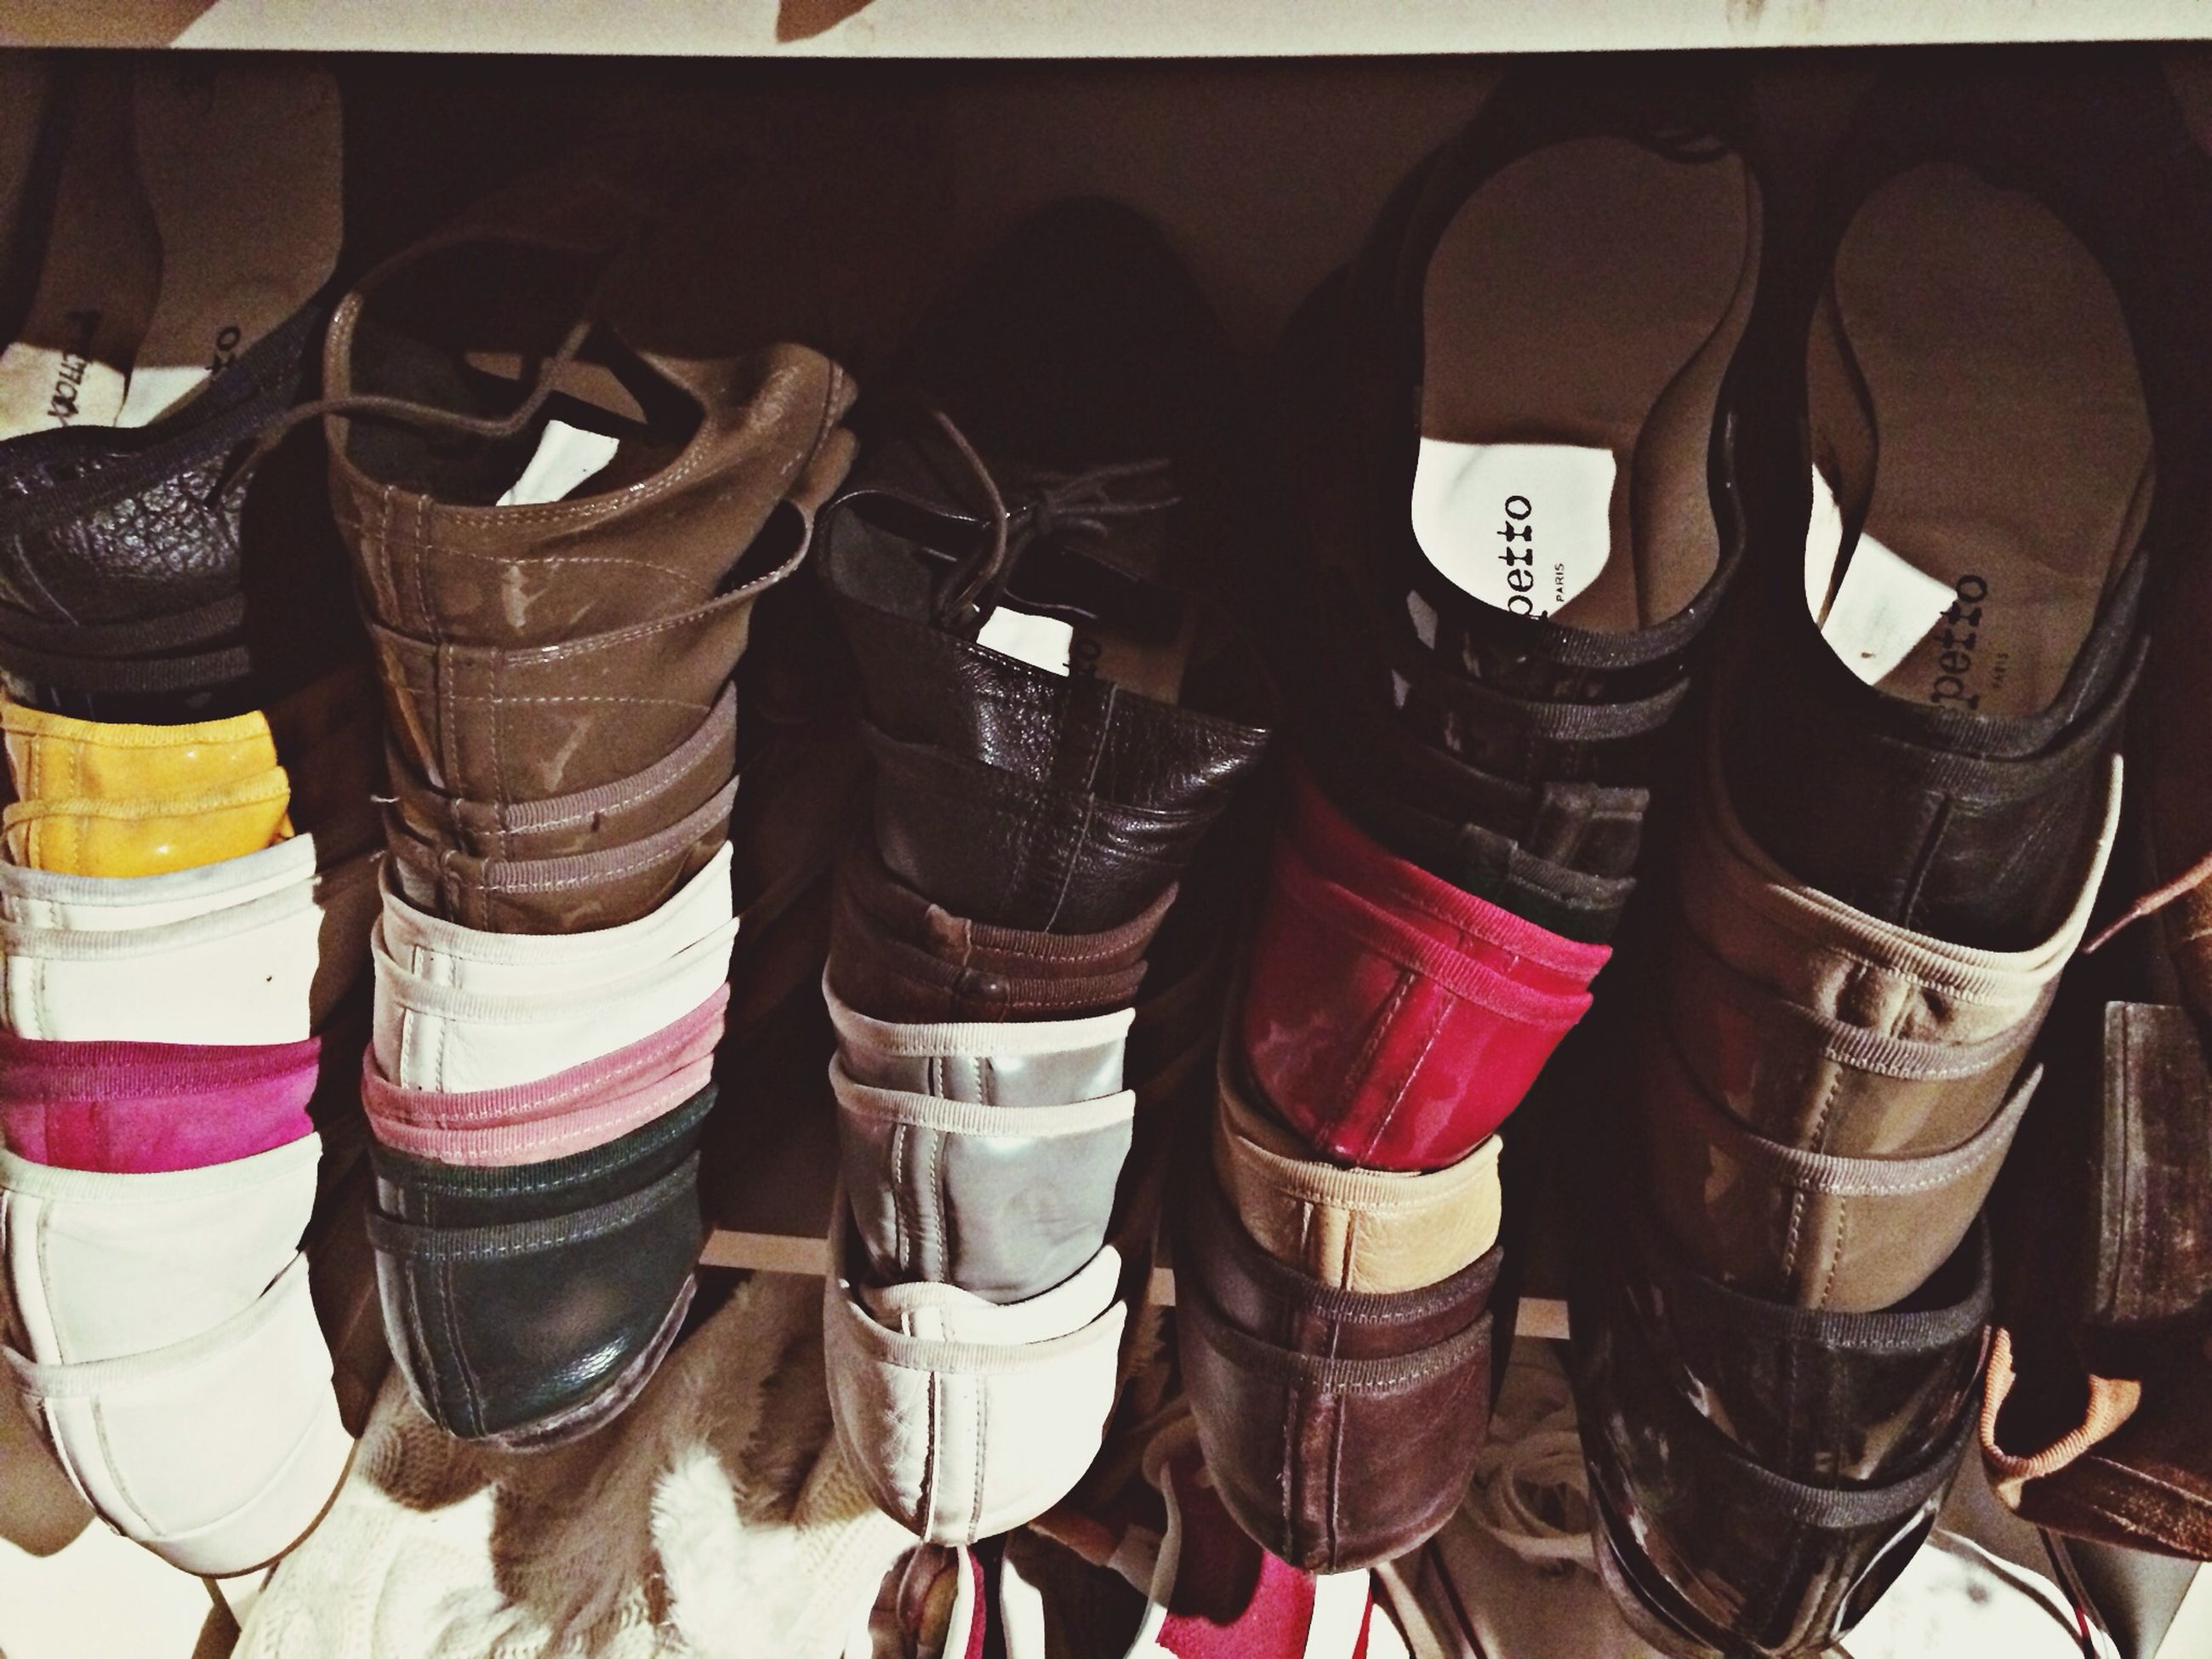 indoors, men, shoe, low section, in a row, text, communication, lifestyles, side by side, standing, variation, clothing, person, choice, hanging, high angle view, technology